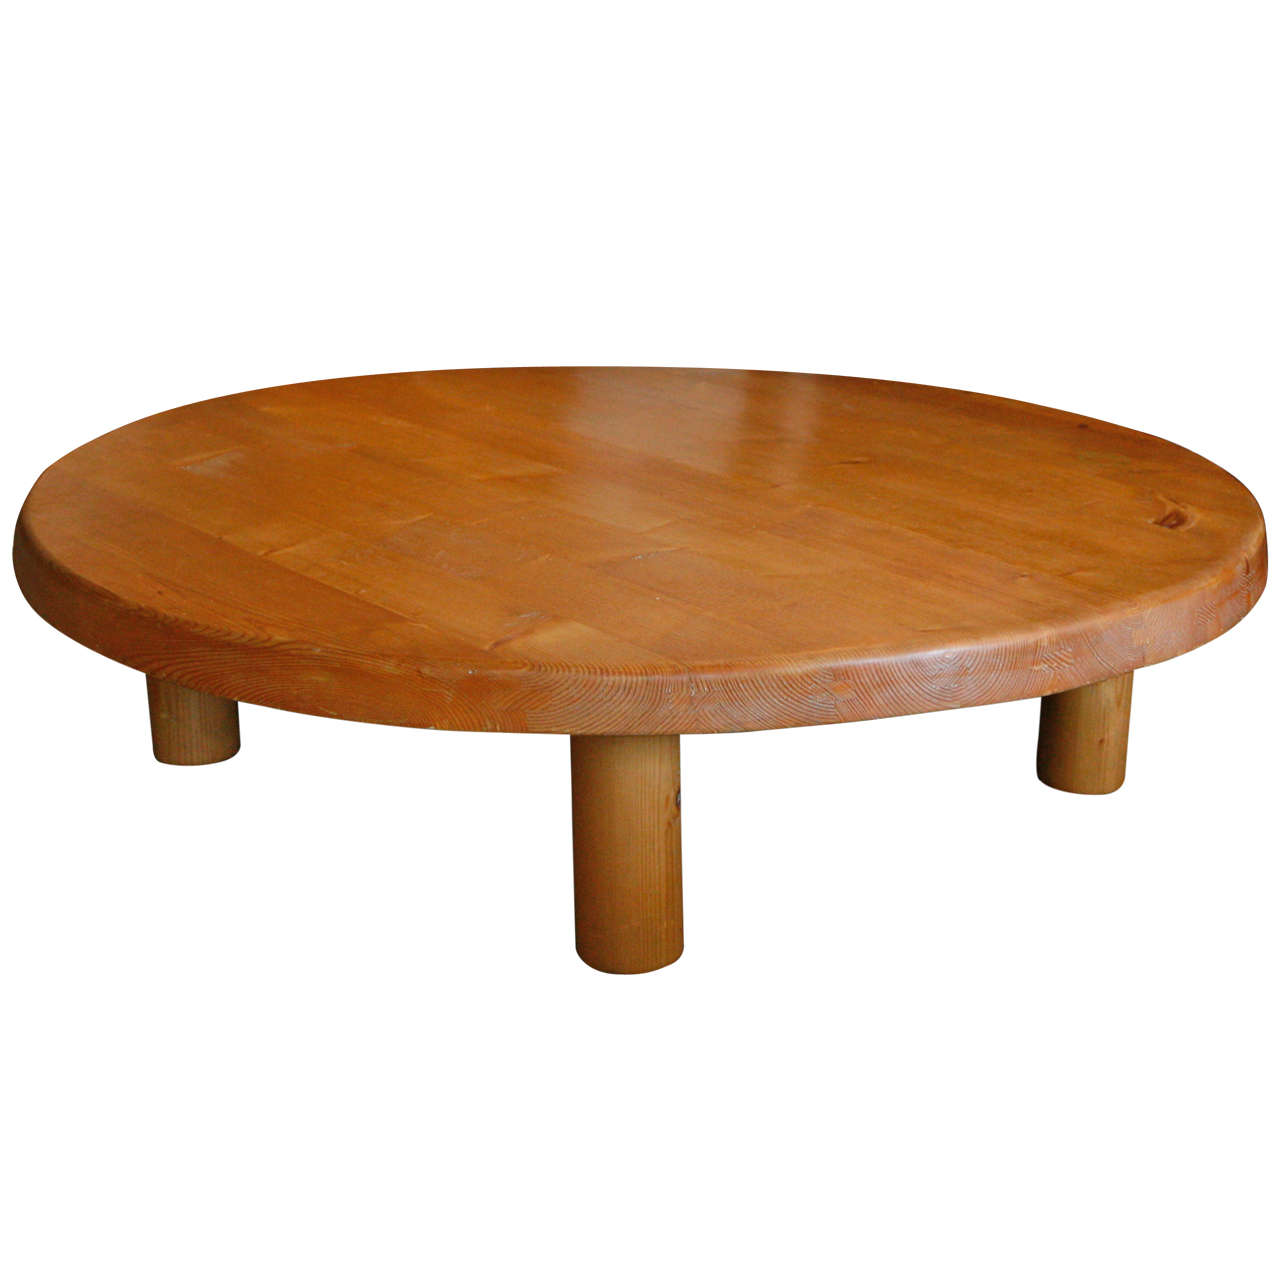 Large charlotte perriand table france 1950 at 1stdibs - Table charlotte perriand ...